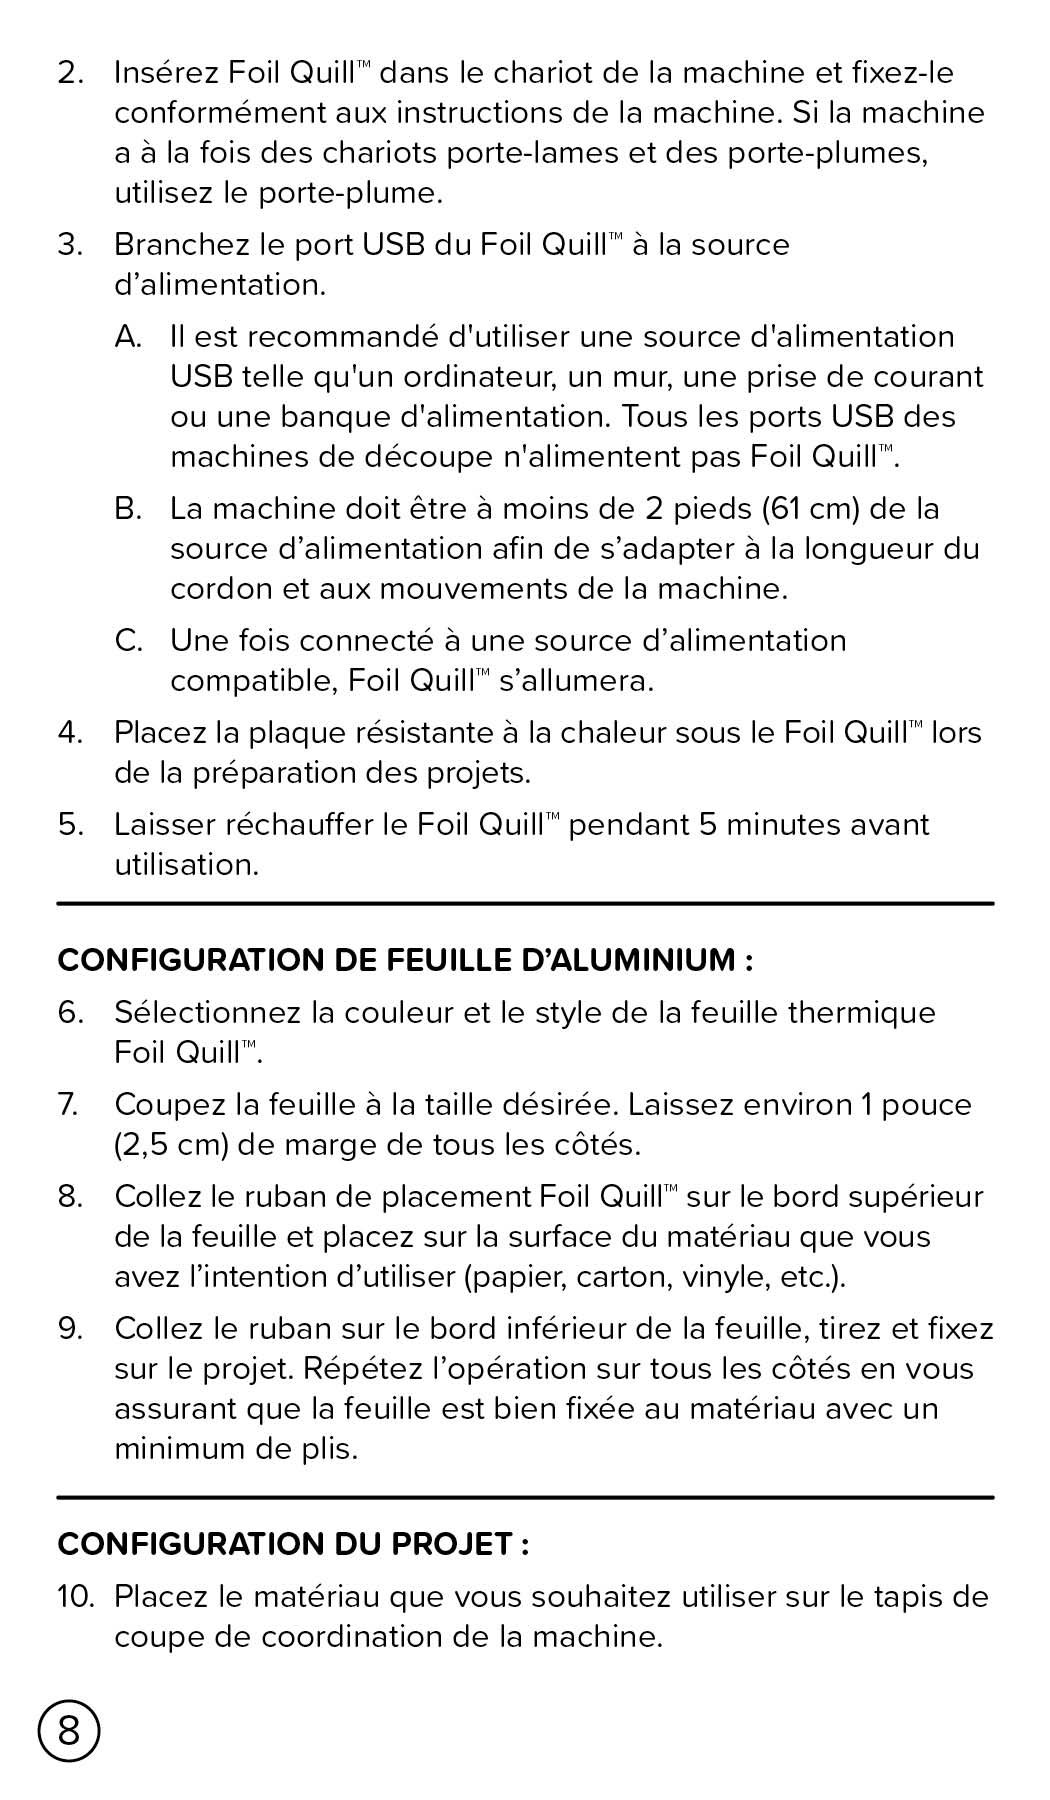 WR_FoilQuill_Instructions_08